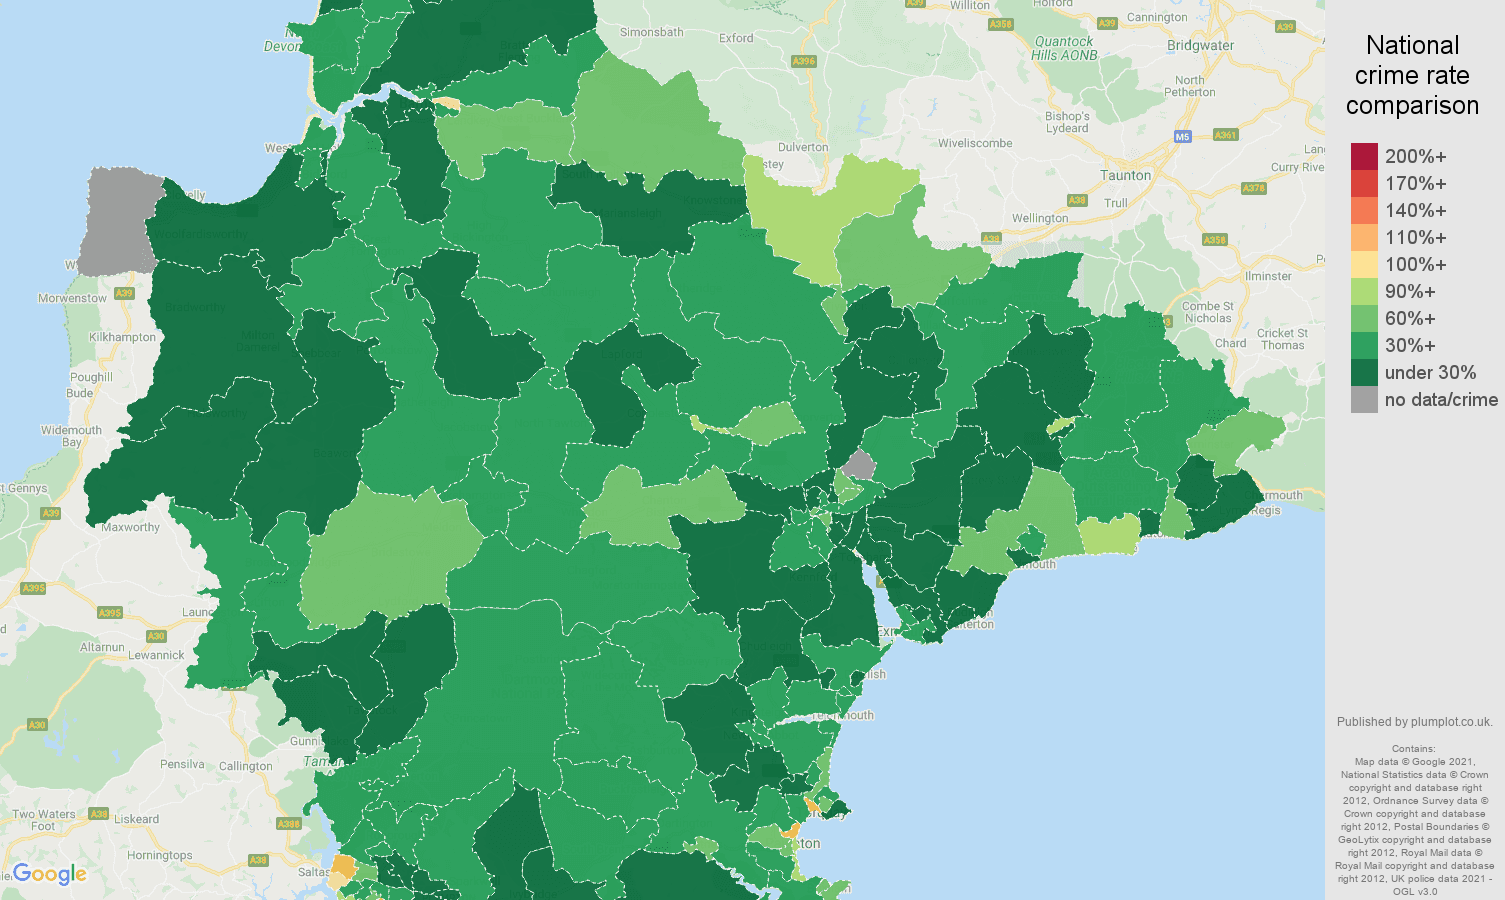 Devon burglary crime rate comparison map